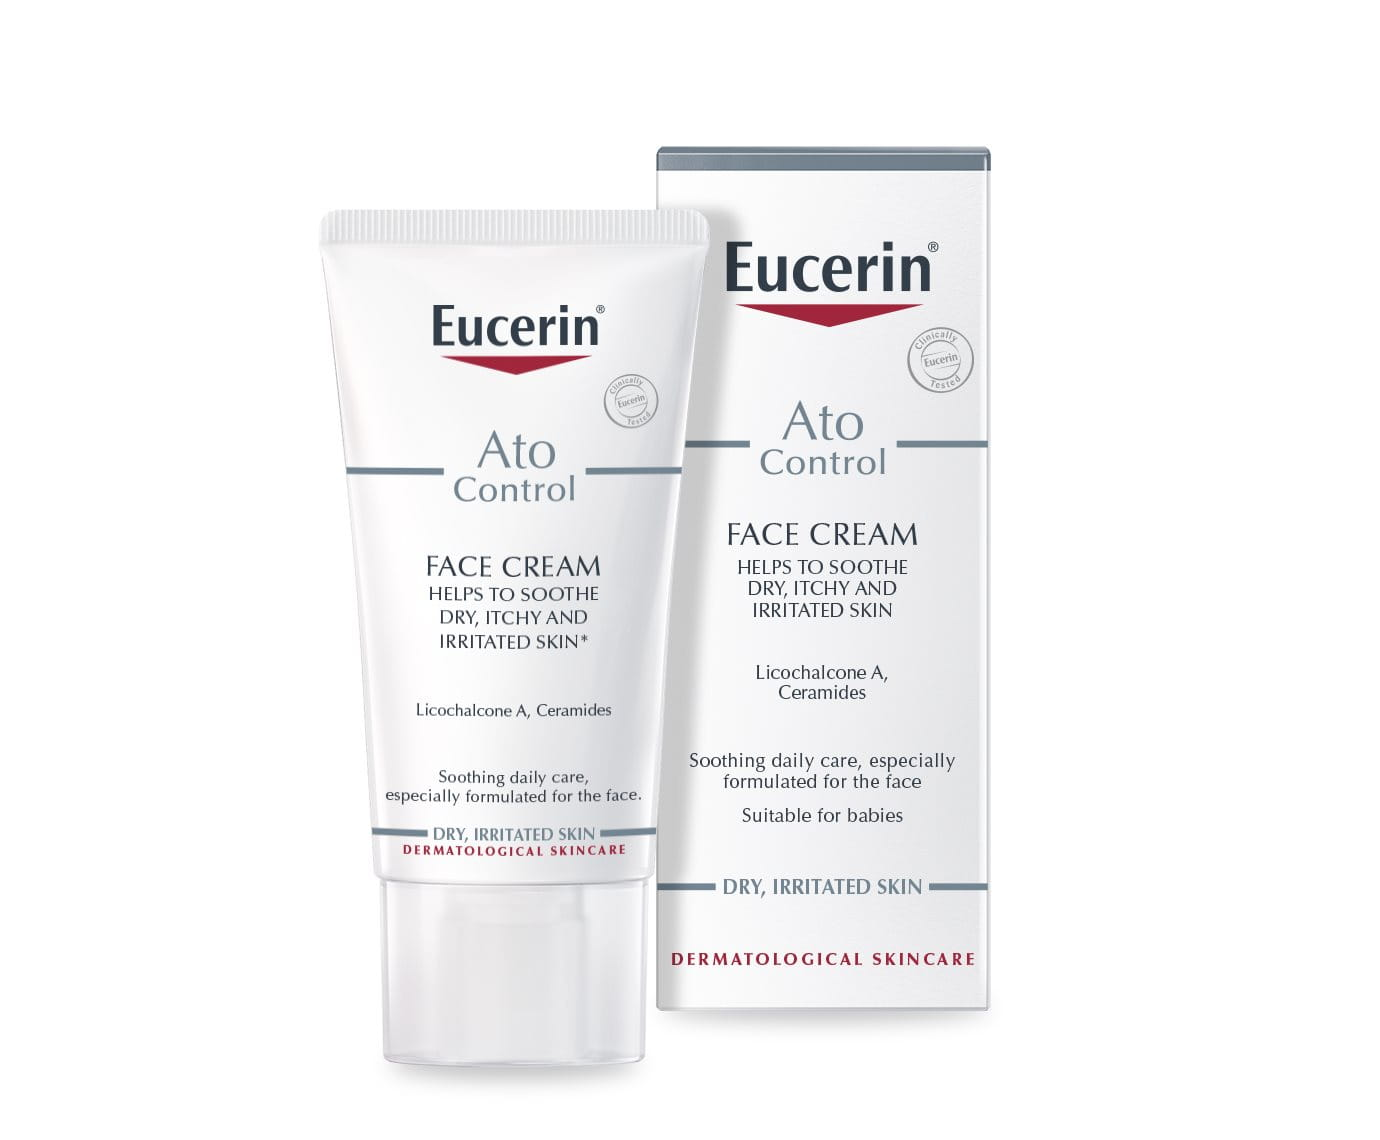 eucerin face care cream